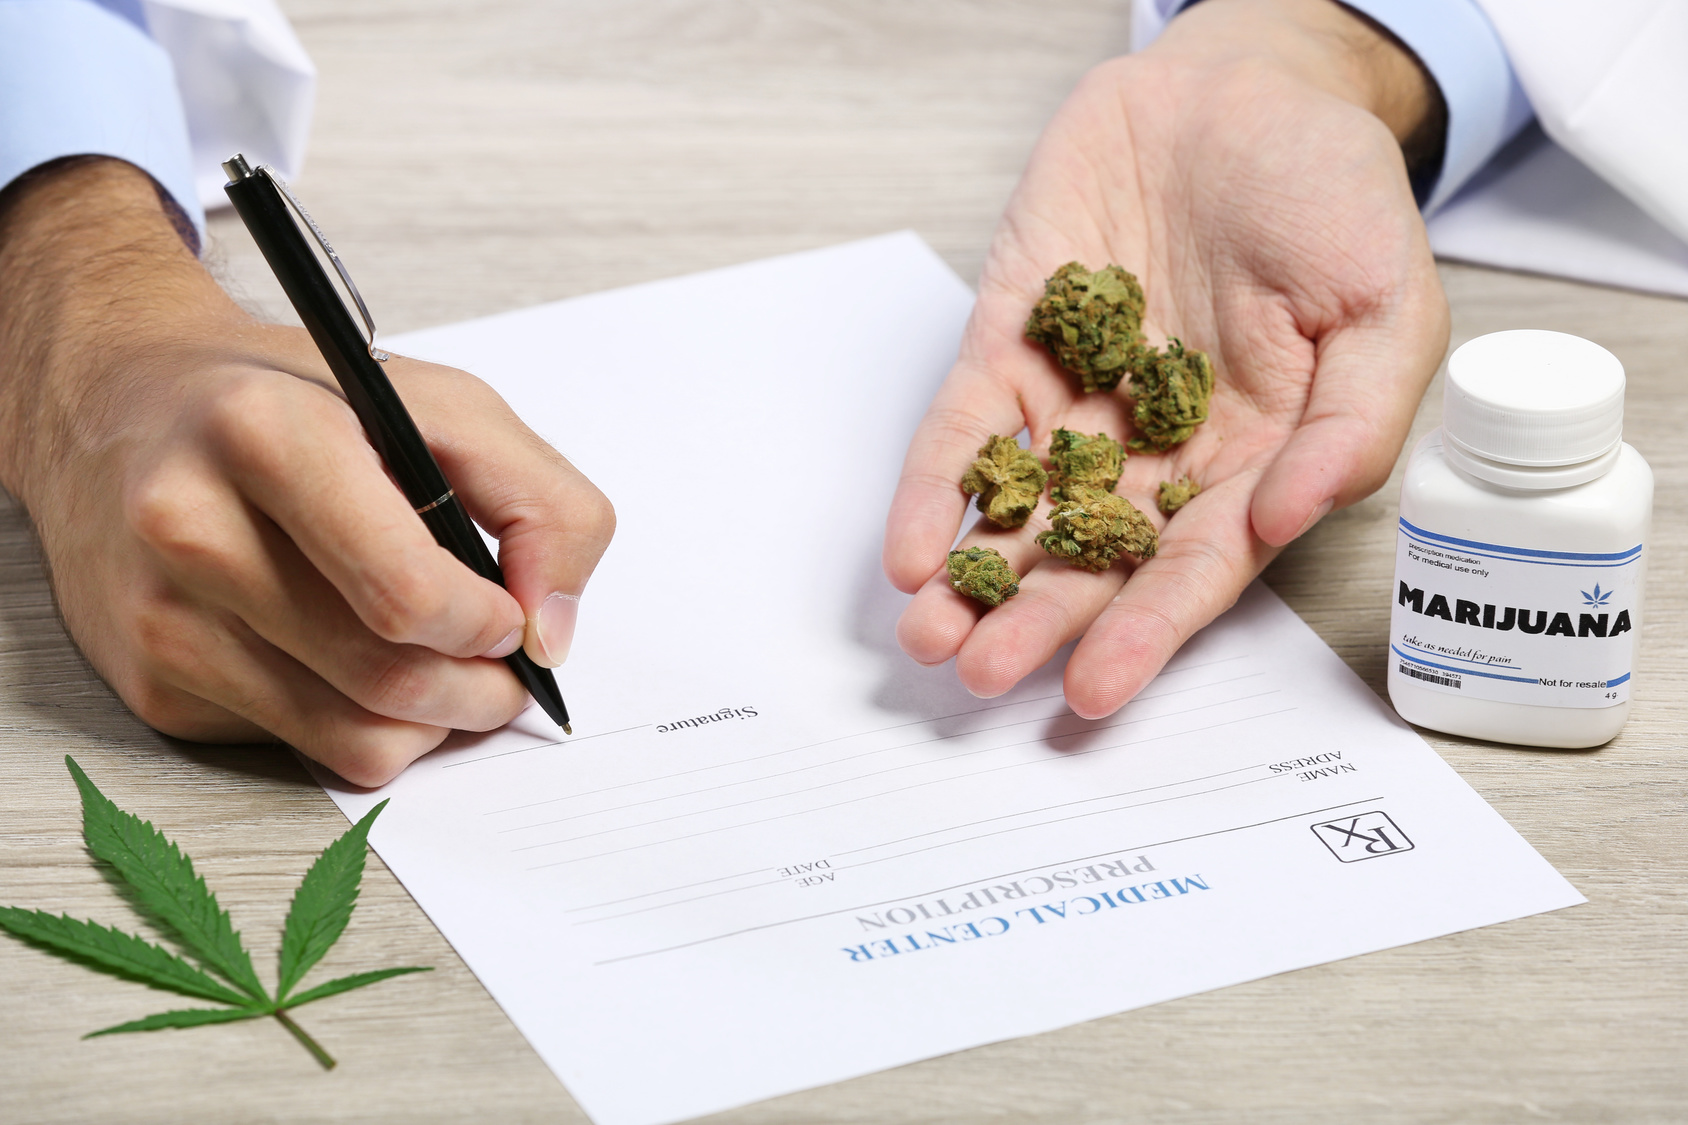 Doctor hand holding dry medical cannabis on table close up